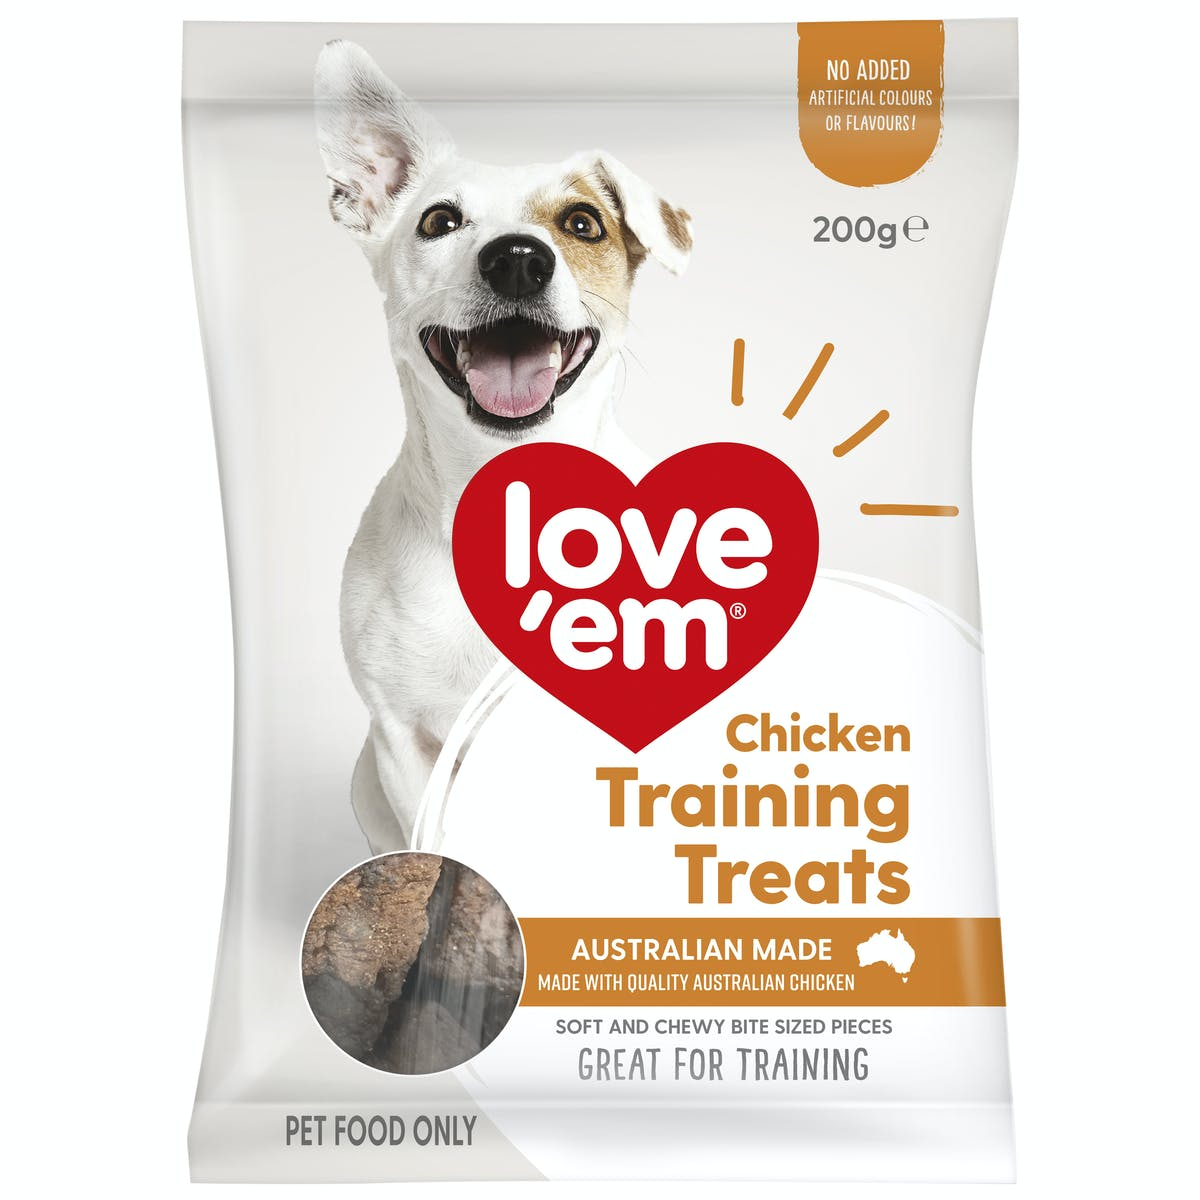 Love'em | Chicken Training Treats | Train dog | Front of pack